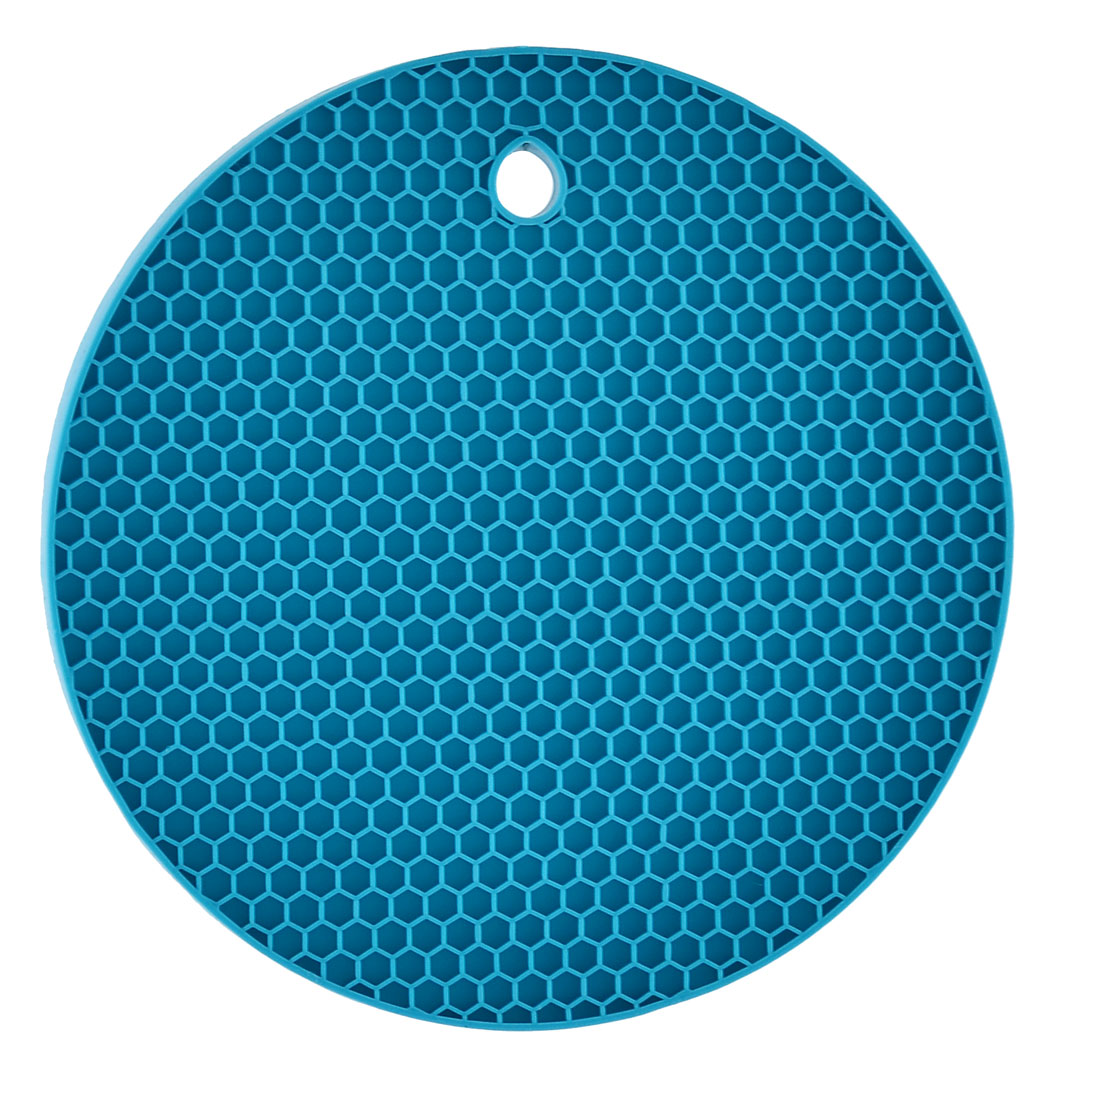 Kitchen Table Round Shaped Nonslip Heat Insulated Pot Mat Pad Holder Teal Blue